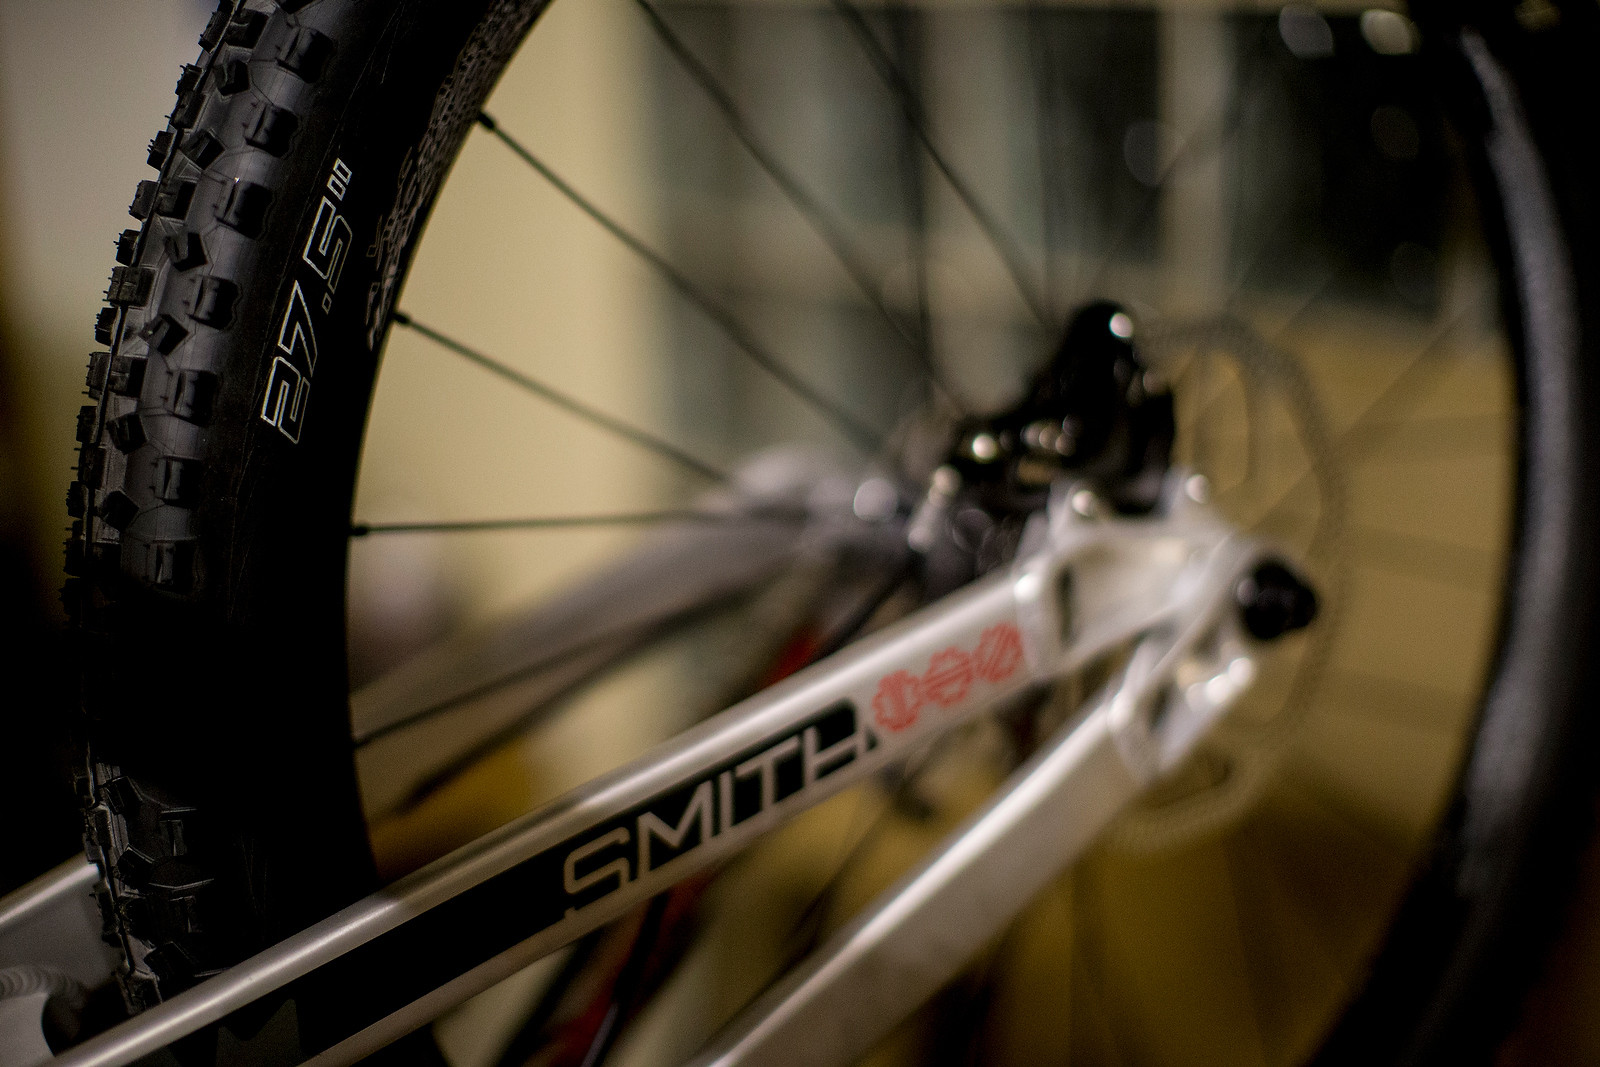 Steve Smith's Prototype 27.5 Bike Rear End - World Championships Bikes and Gear 2013 - Mountain Biking Pictures - Vital MTB